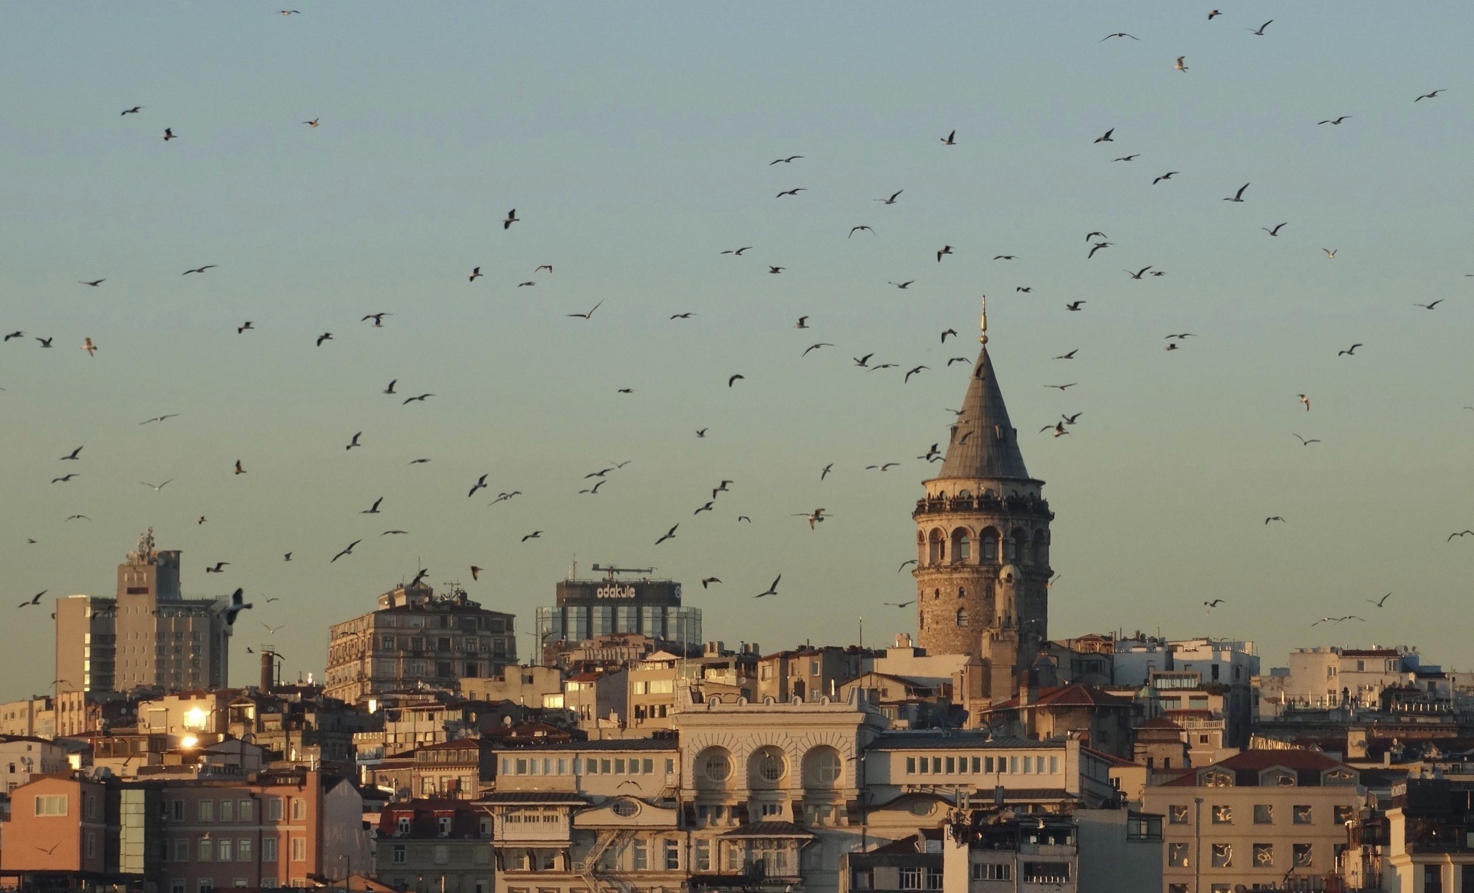 Galata Tower in Istanbul Surrounded by Seagulls